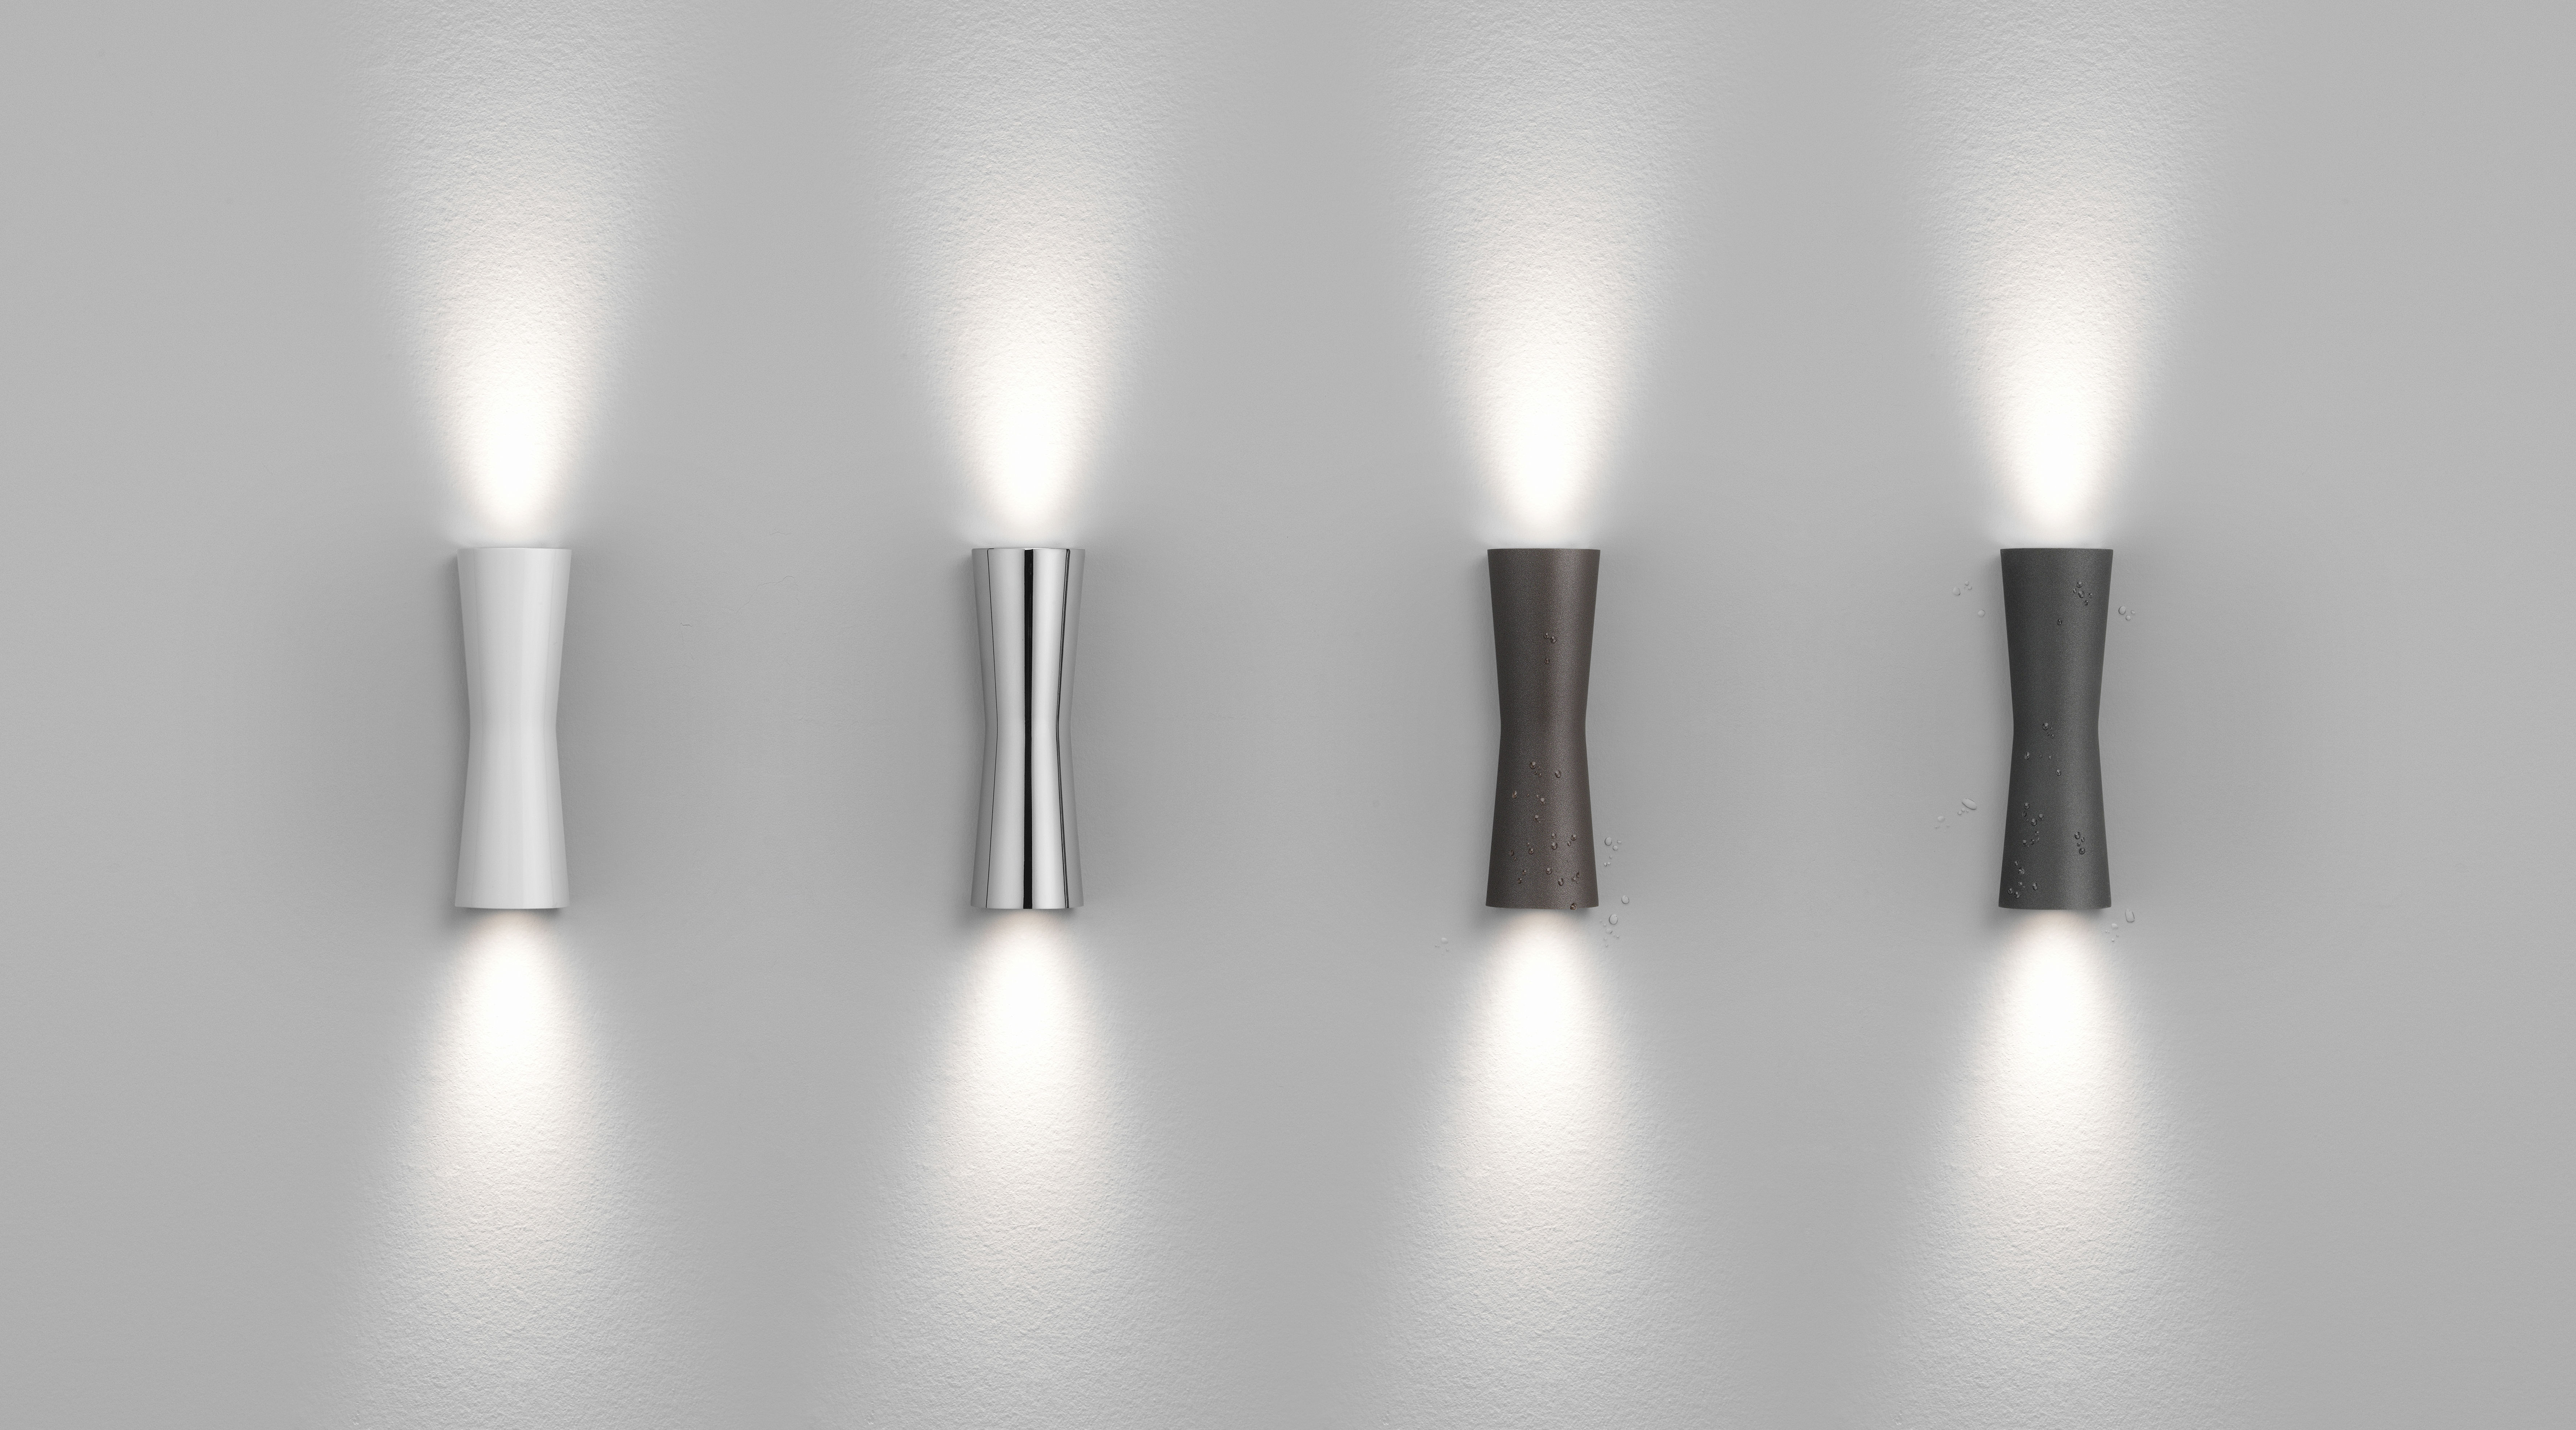 Lvl wall lights uk contemporary the lamps wall lights uk contemporary cbaarch glass aloadofball Gallery